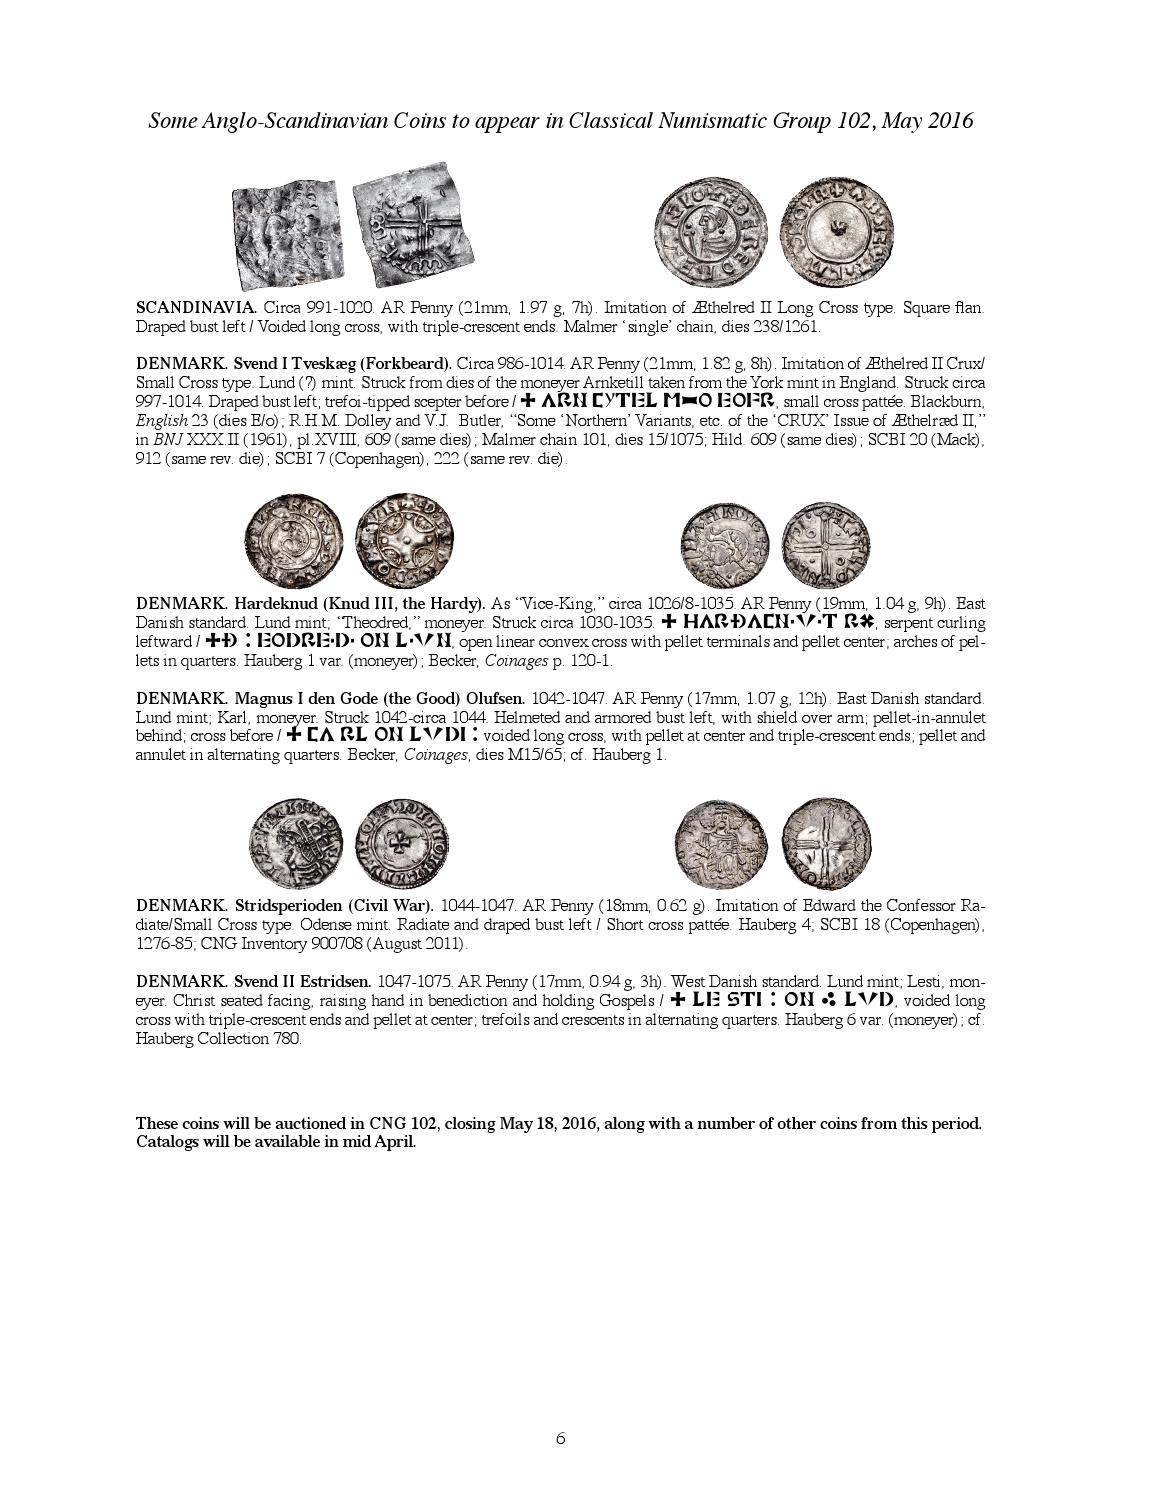 CNG CNR 2016 03 by Classical Numismatic Group, LLC - issuu